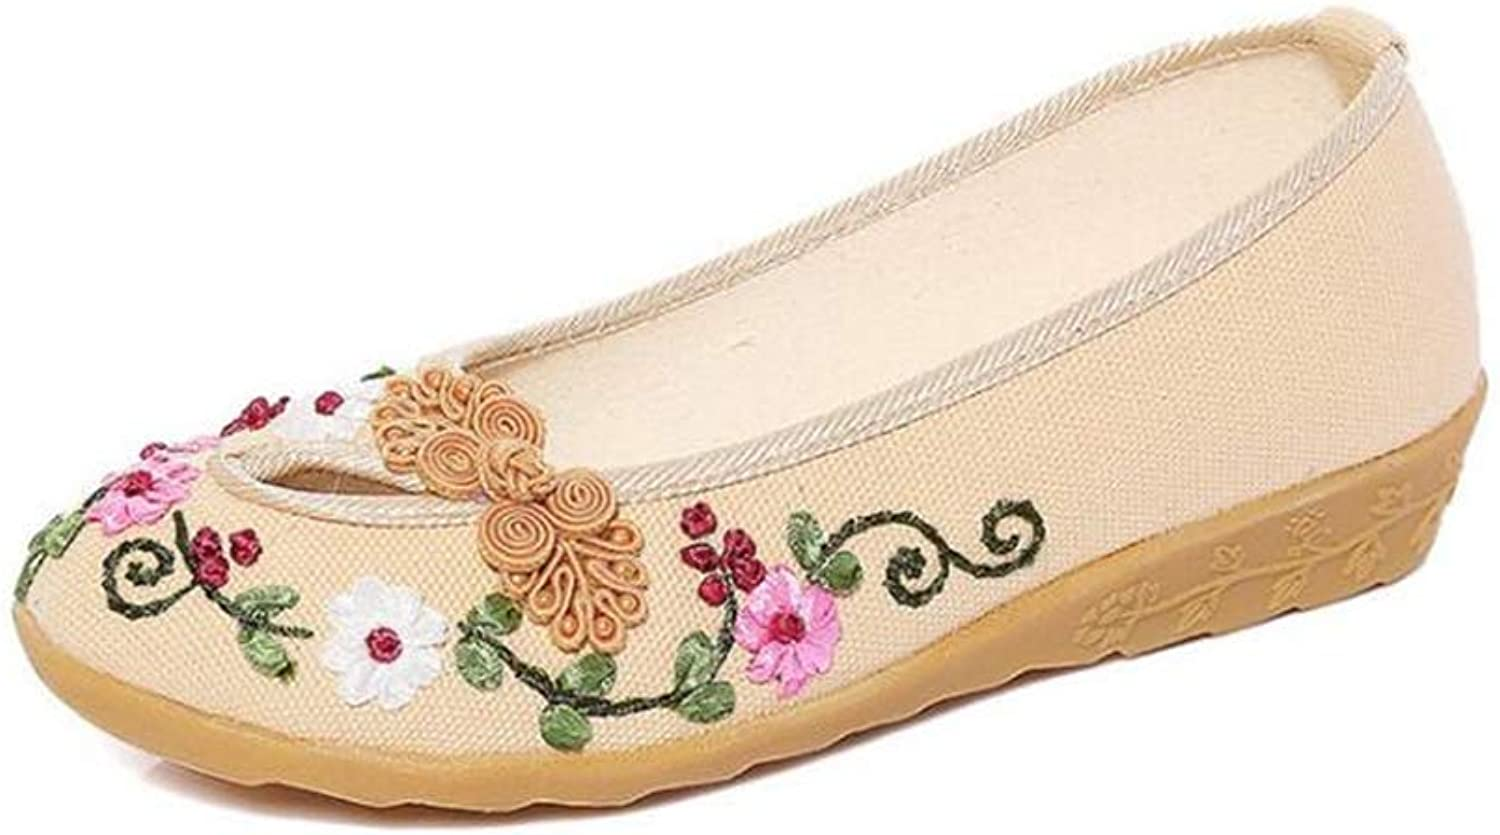 F1rst Rate Embroidered shoes for Women Casual Slip on Round Toe Classic Walking shoes